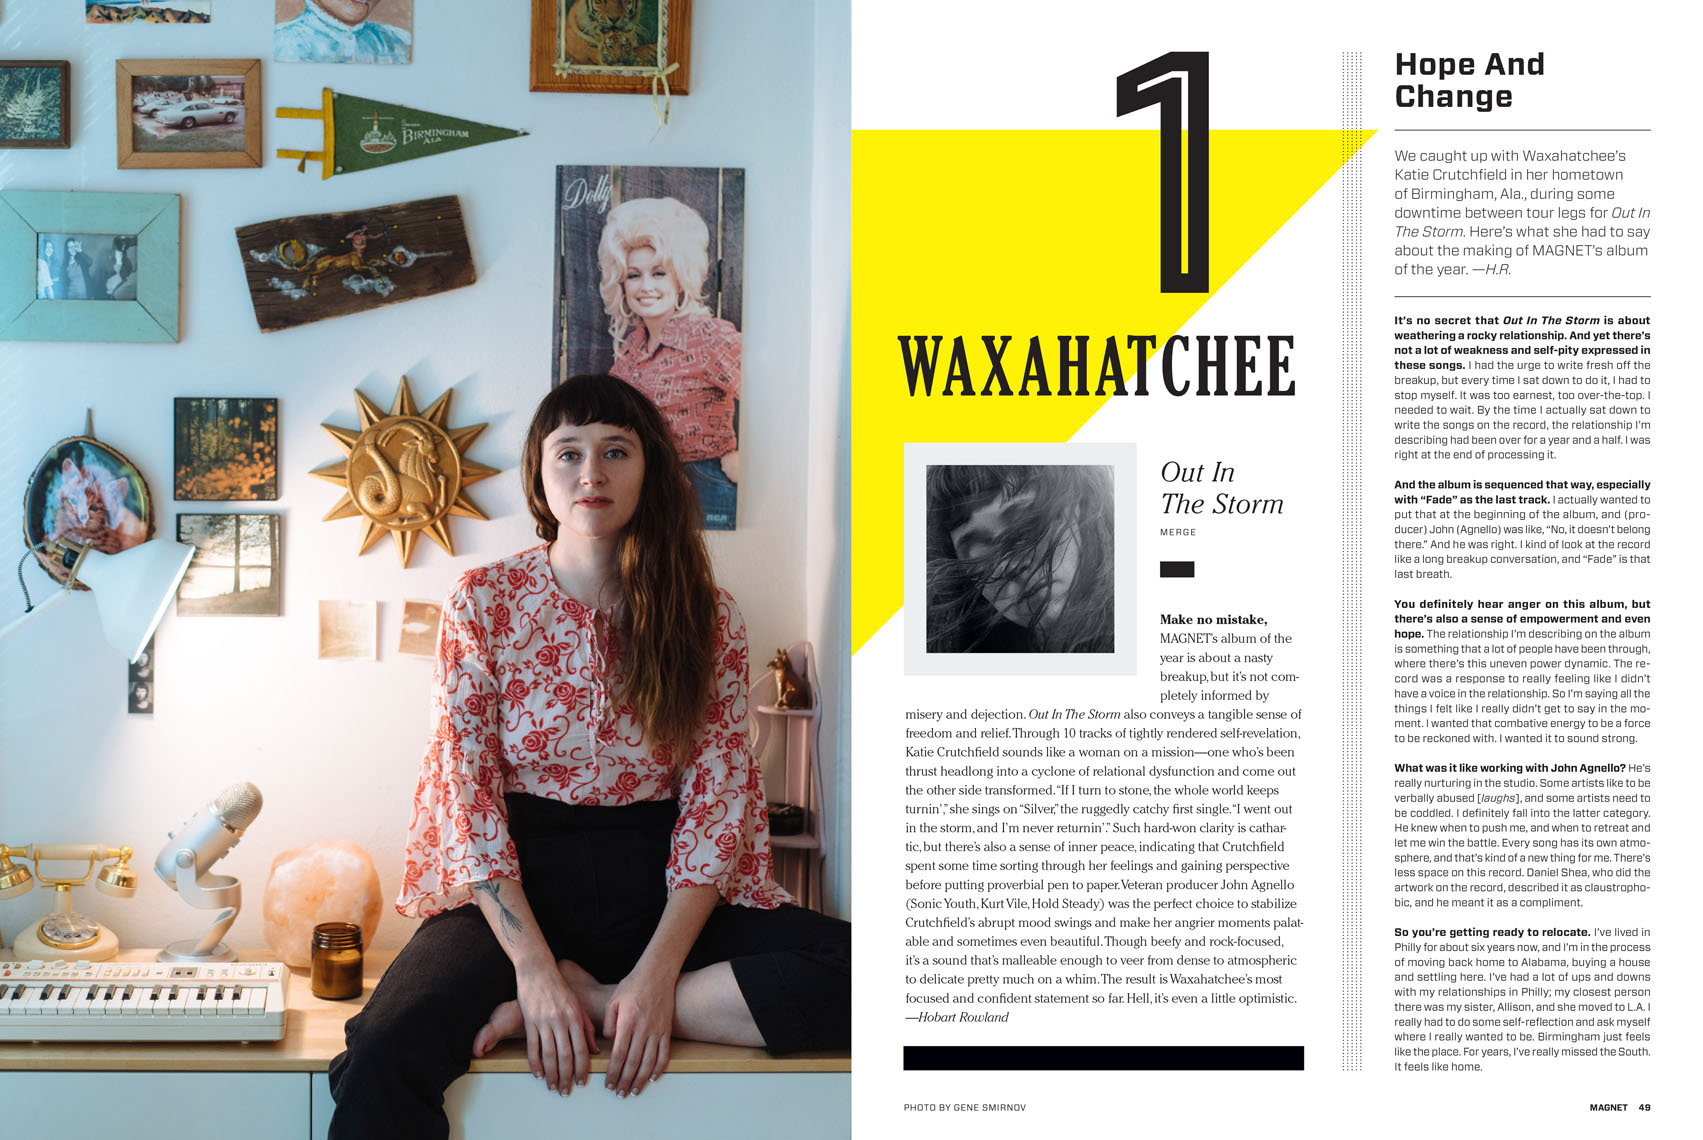 Katie Crutchfield of Waxahatchee feature